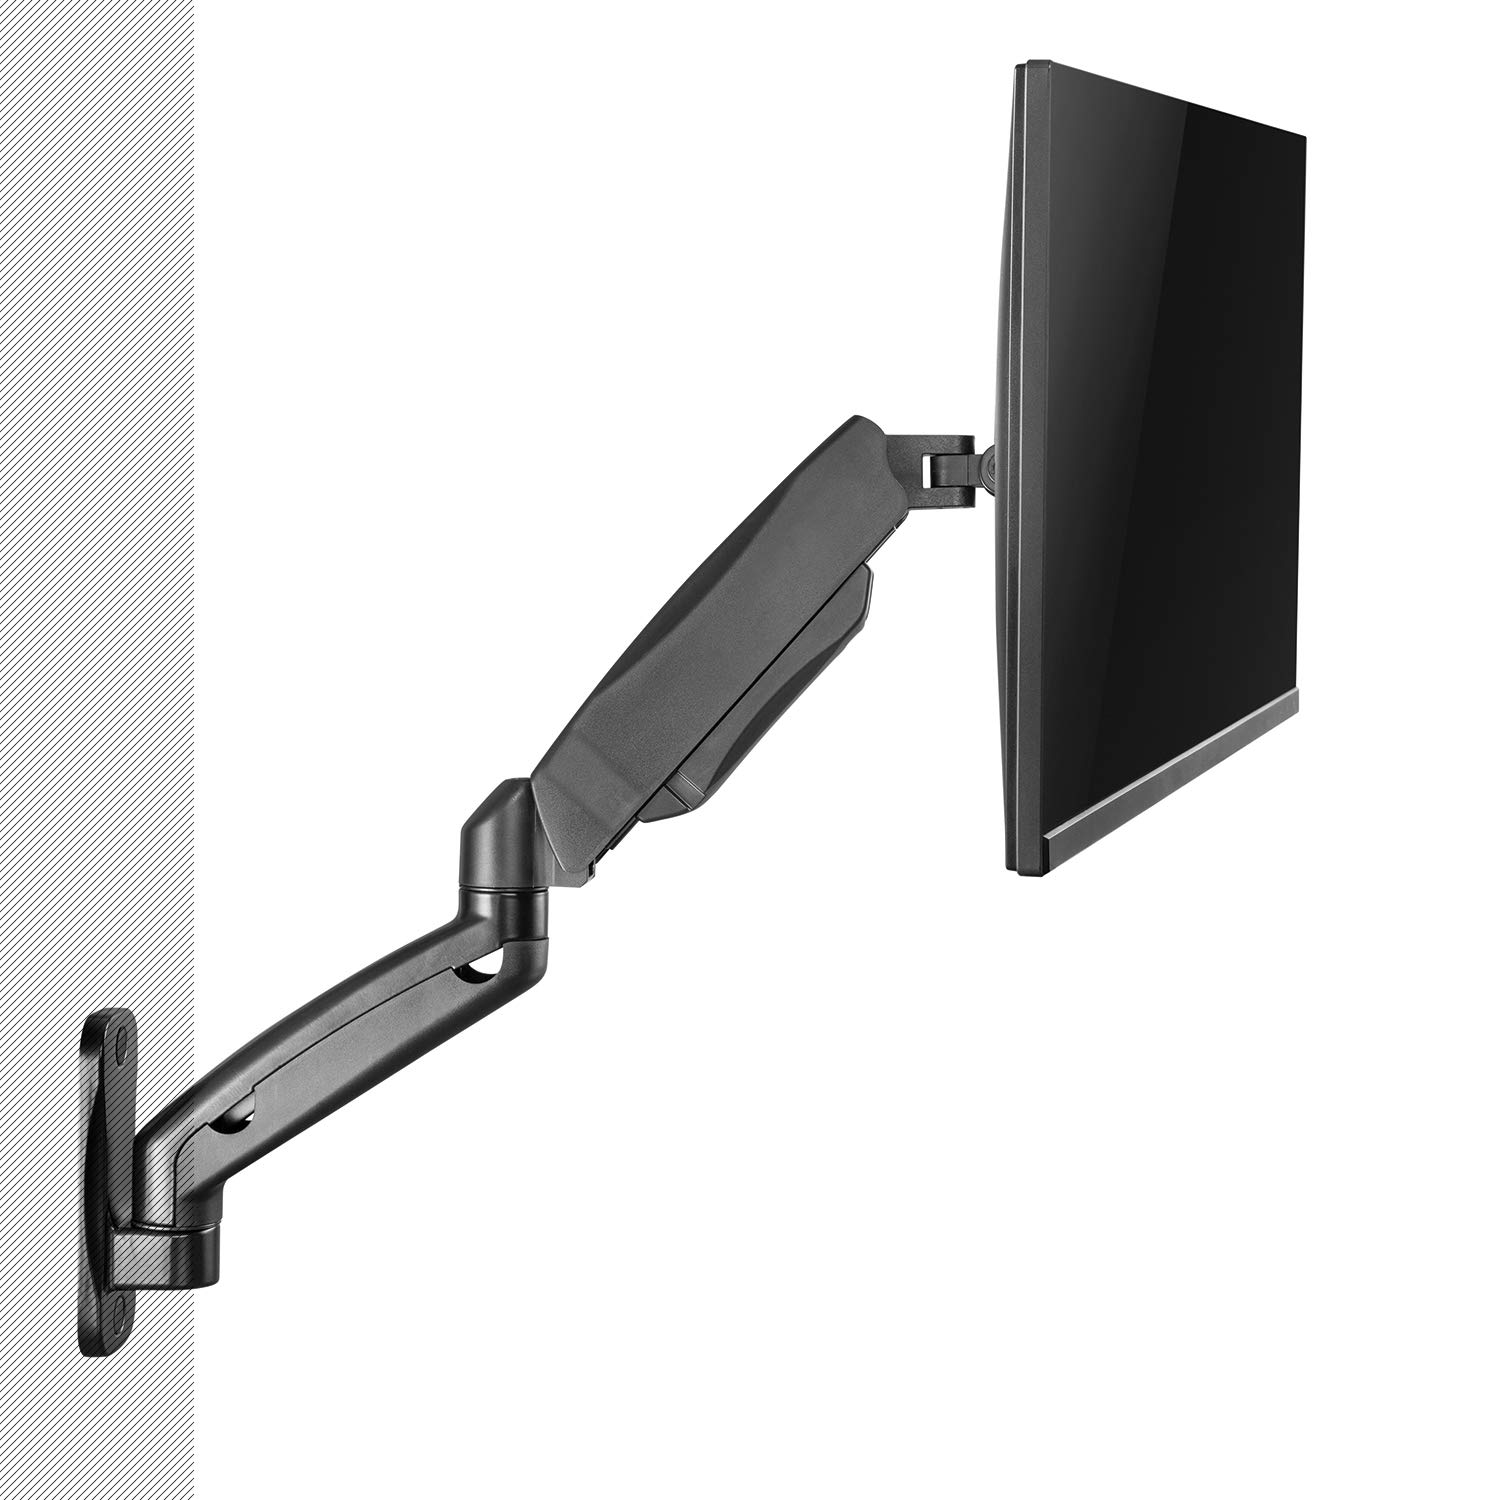 """WALI Universal Single LCD Monitor Fully Adjustable Gas Spring Wall Mount Fits One Screen VESA up to 27"""", 15.4 lbs. Weight Capacity (GSWM001), Black"""